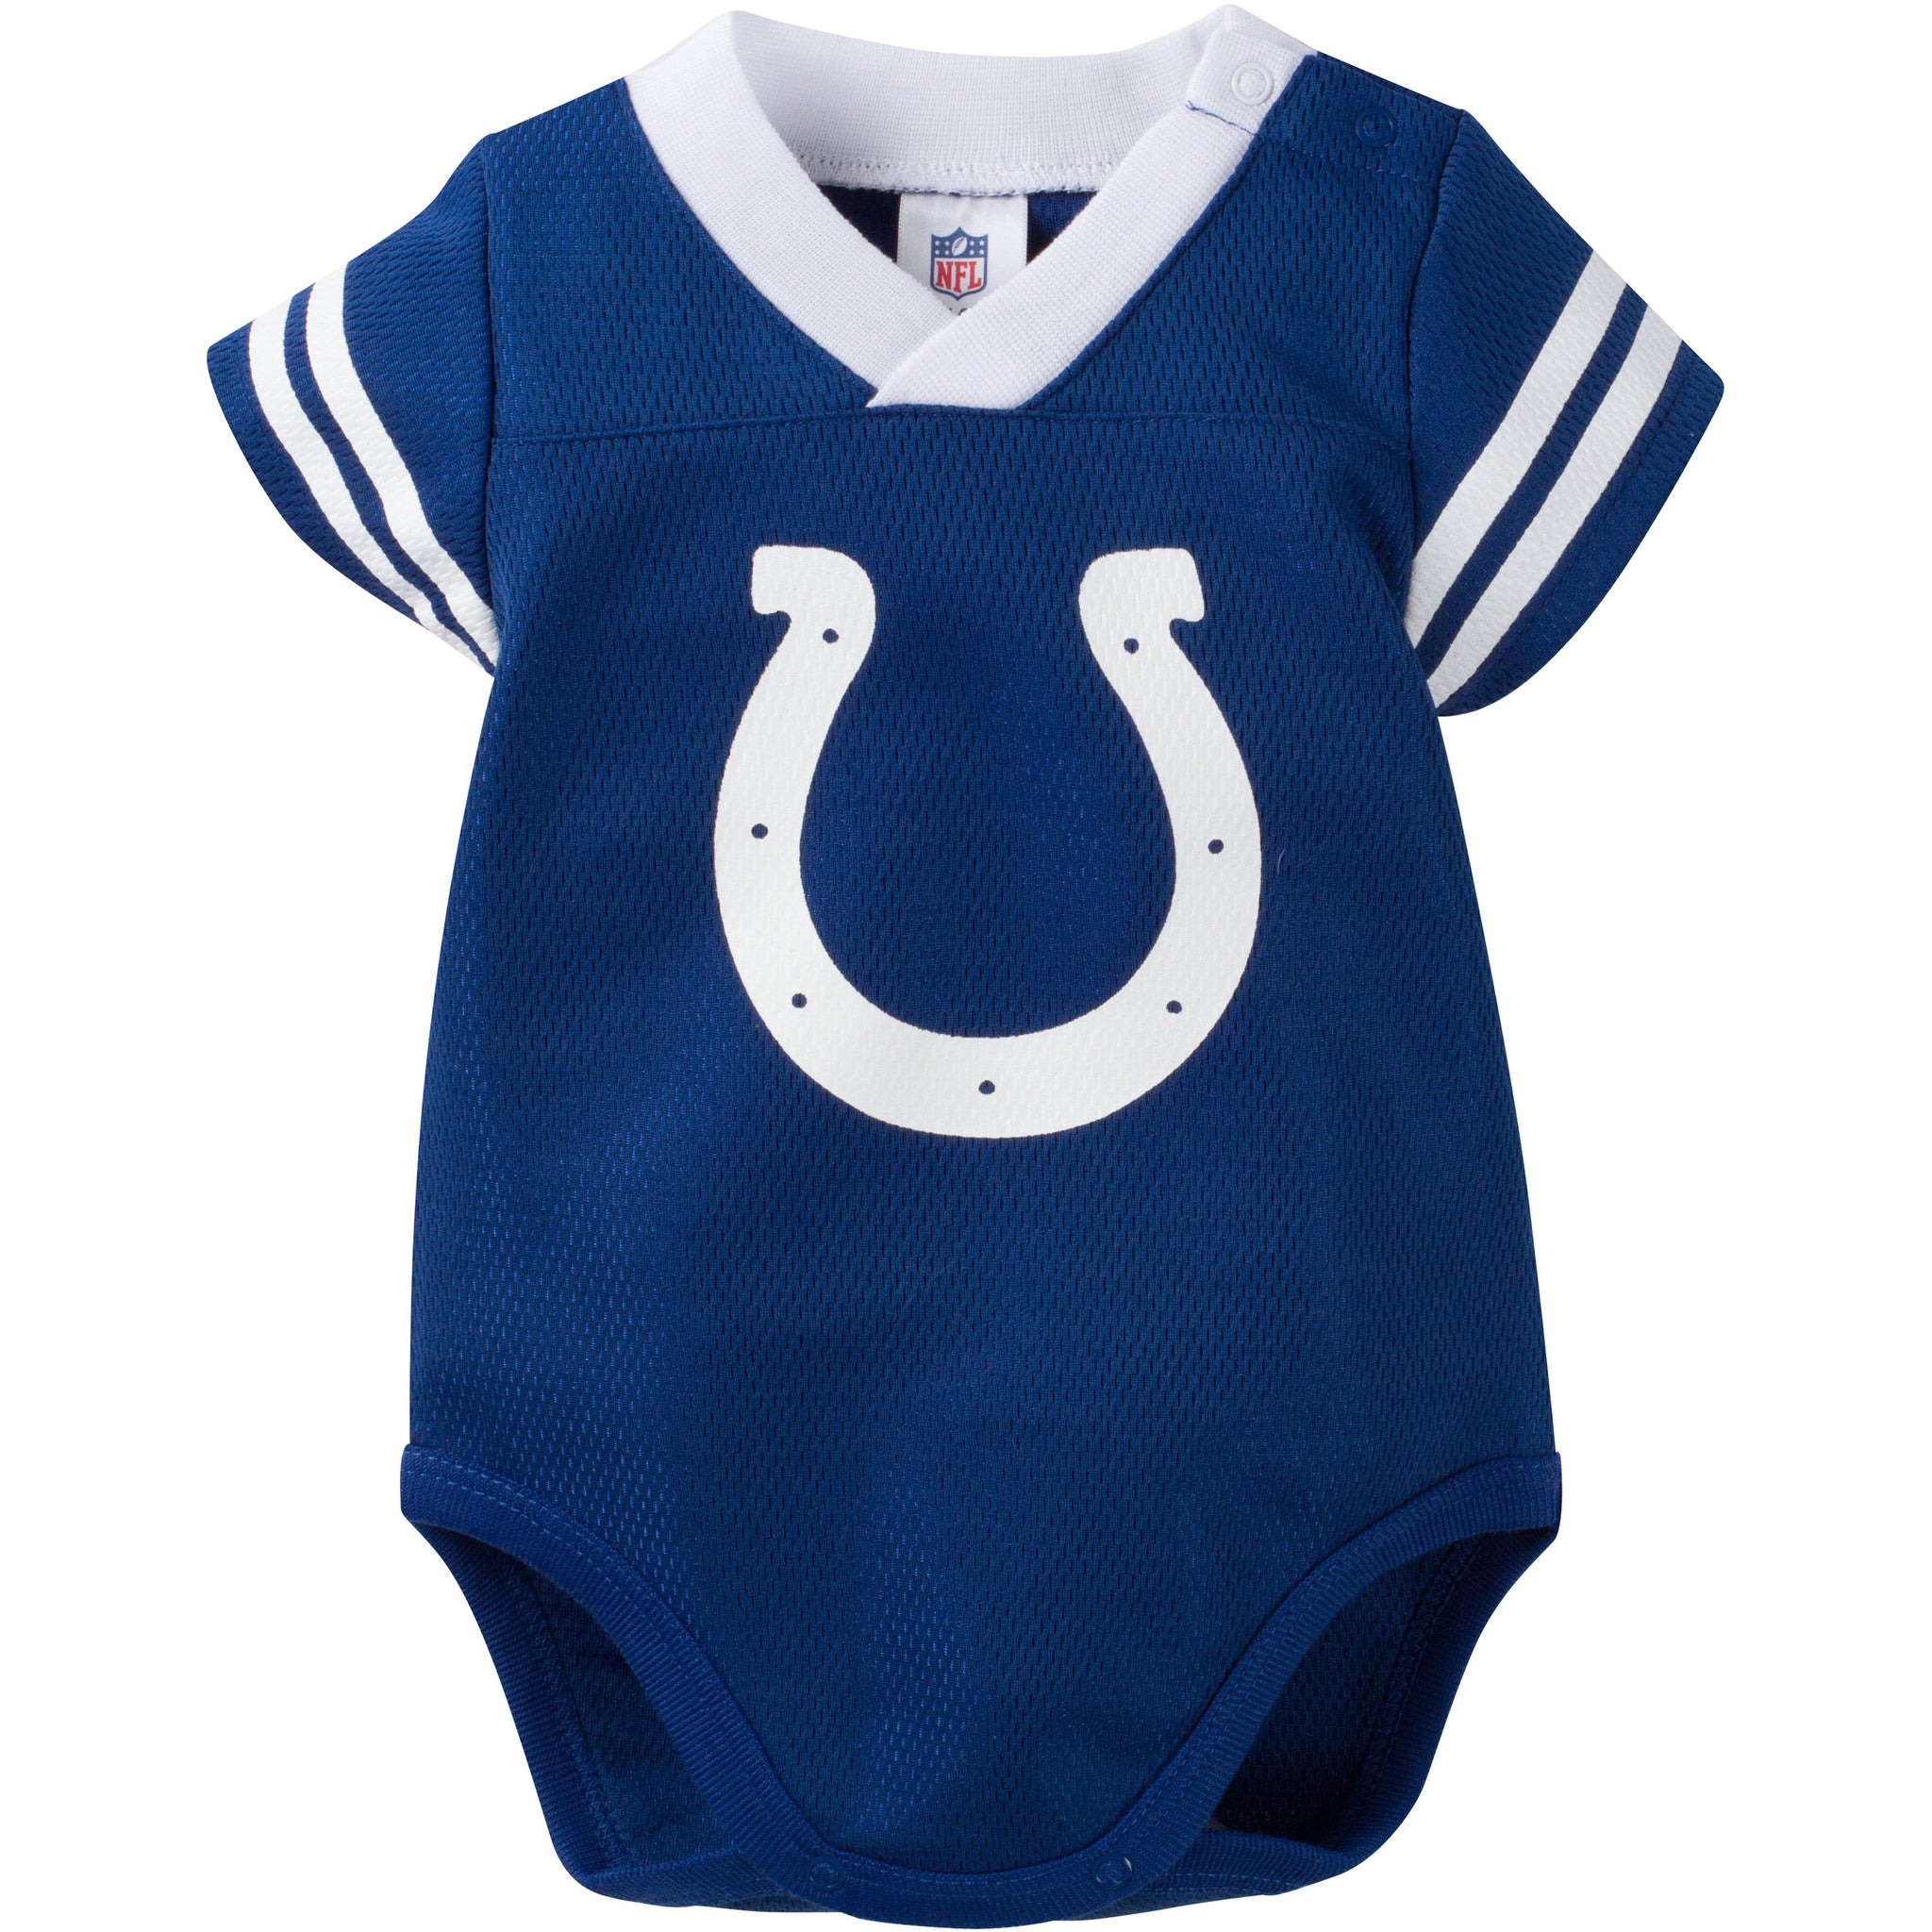 Indianapolis Colts 49ers Baby 1 Pack Bodysuit